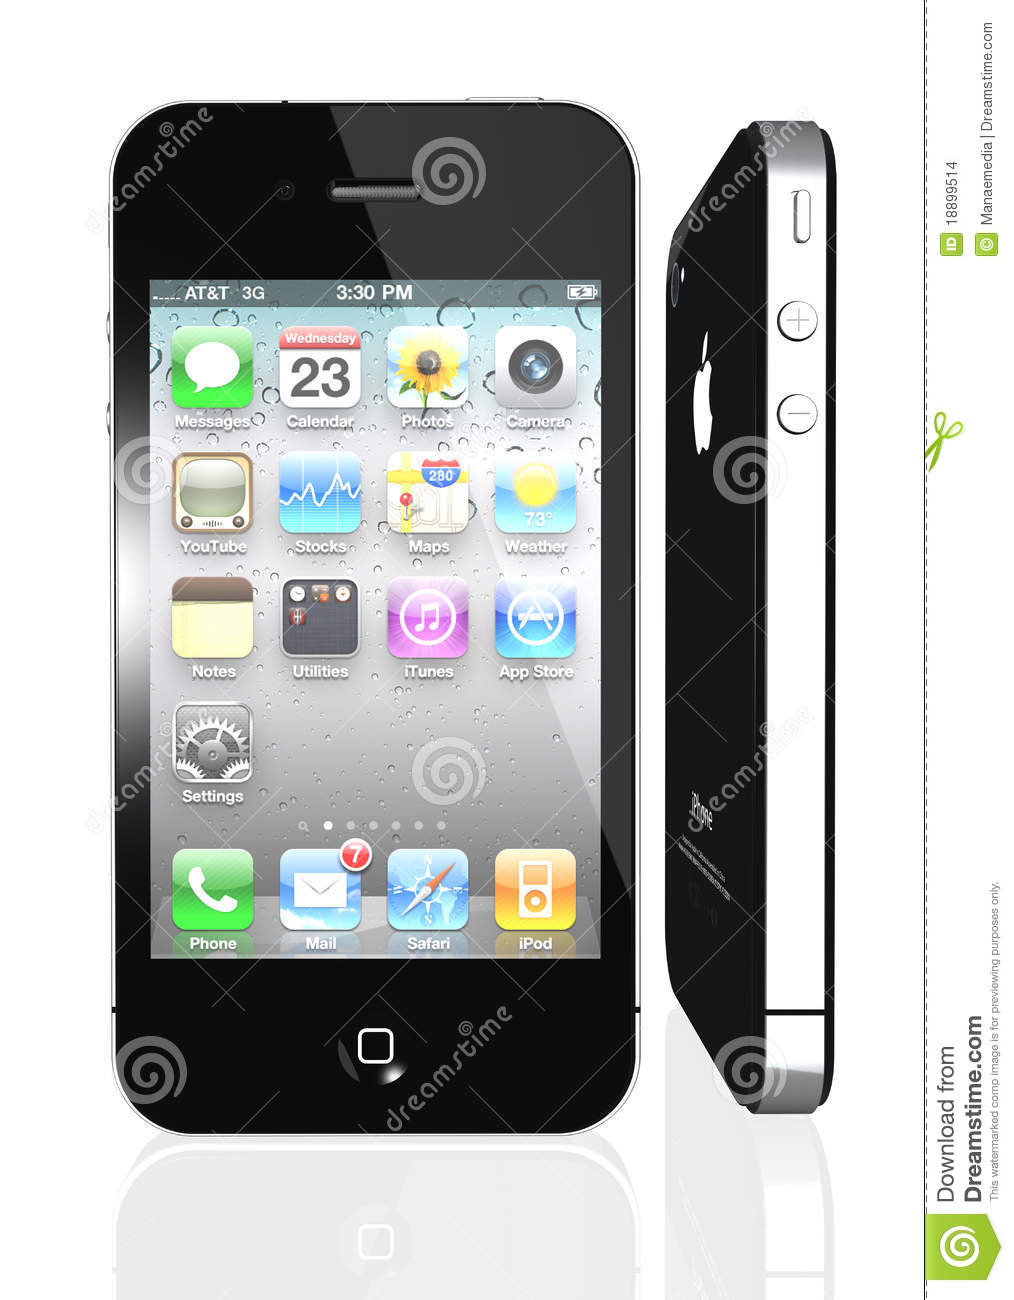 Apple iPhone 4S with icons inside